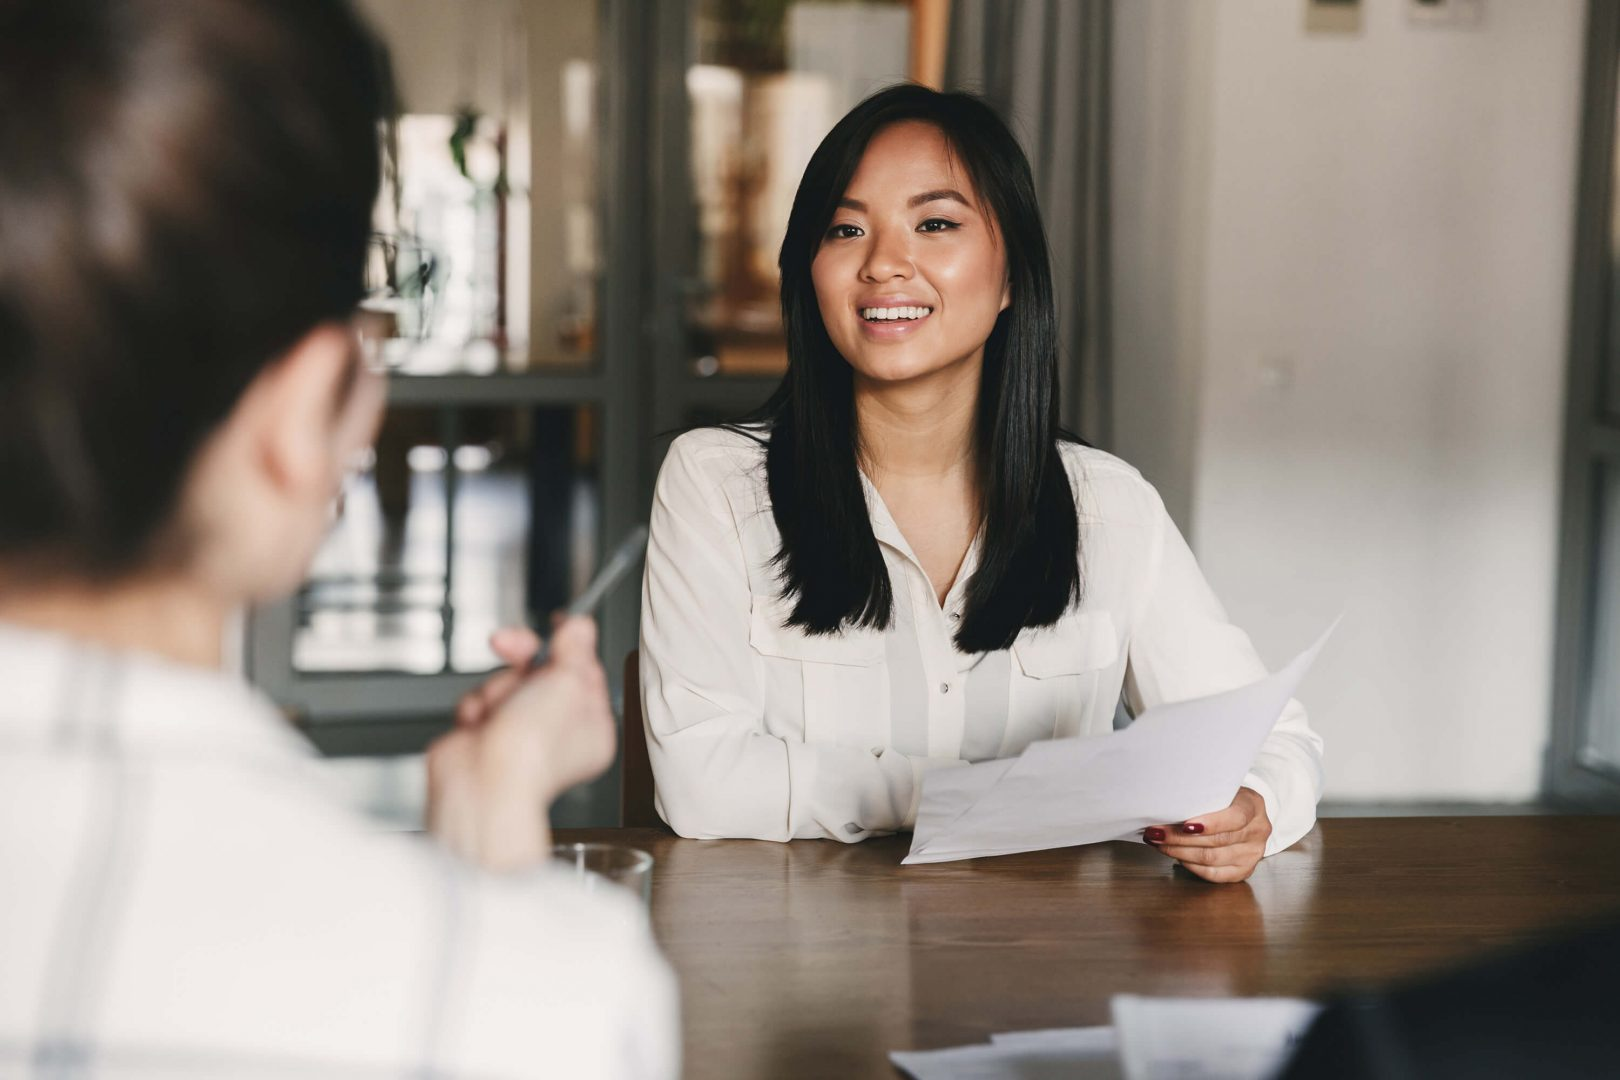 If you think ahead and draft out your answers to most frequently asked questions, the job interview won't be as stressful.